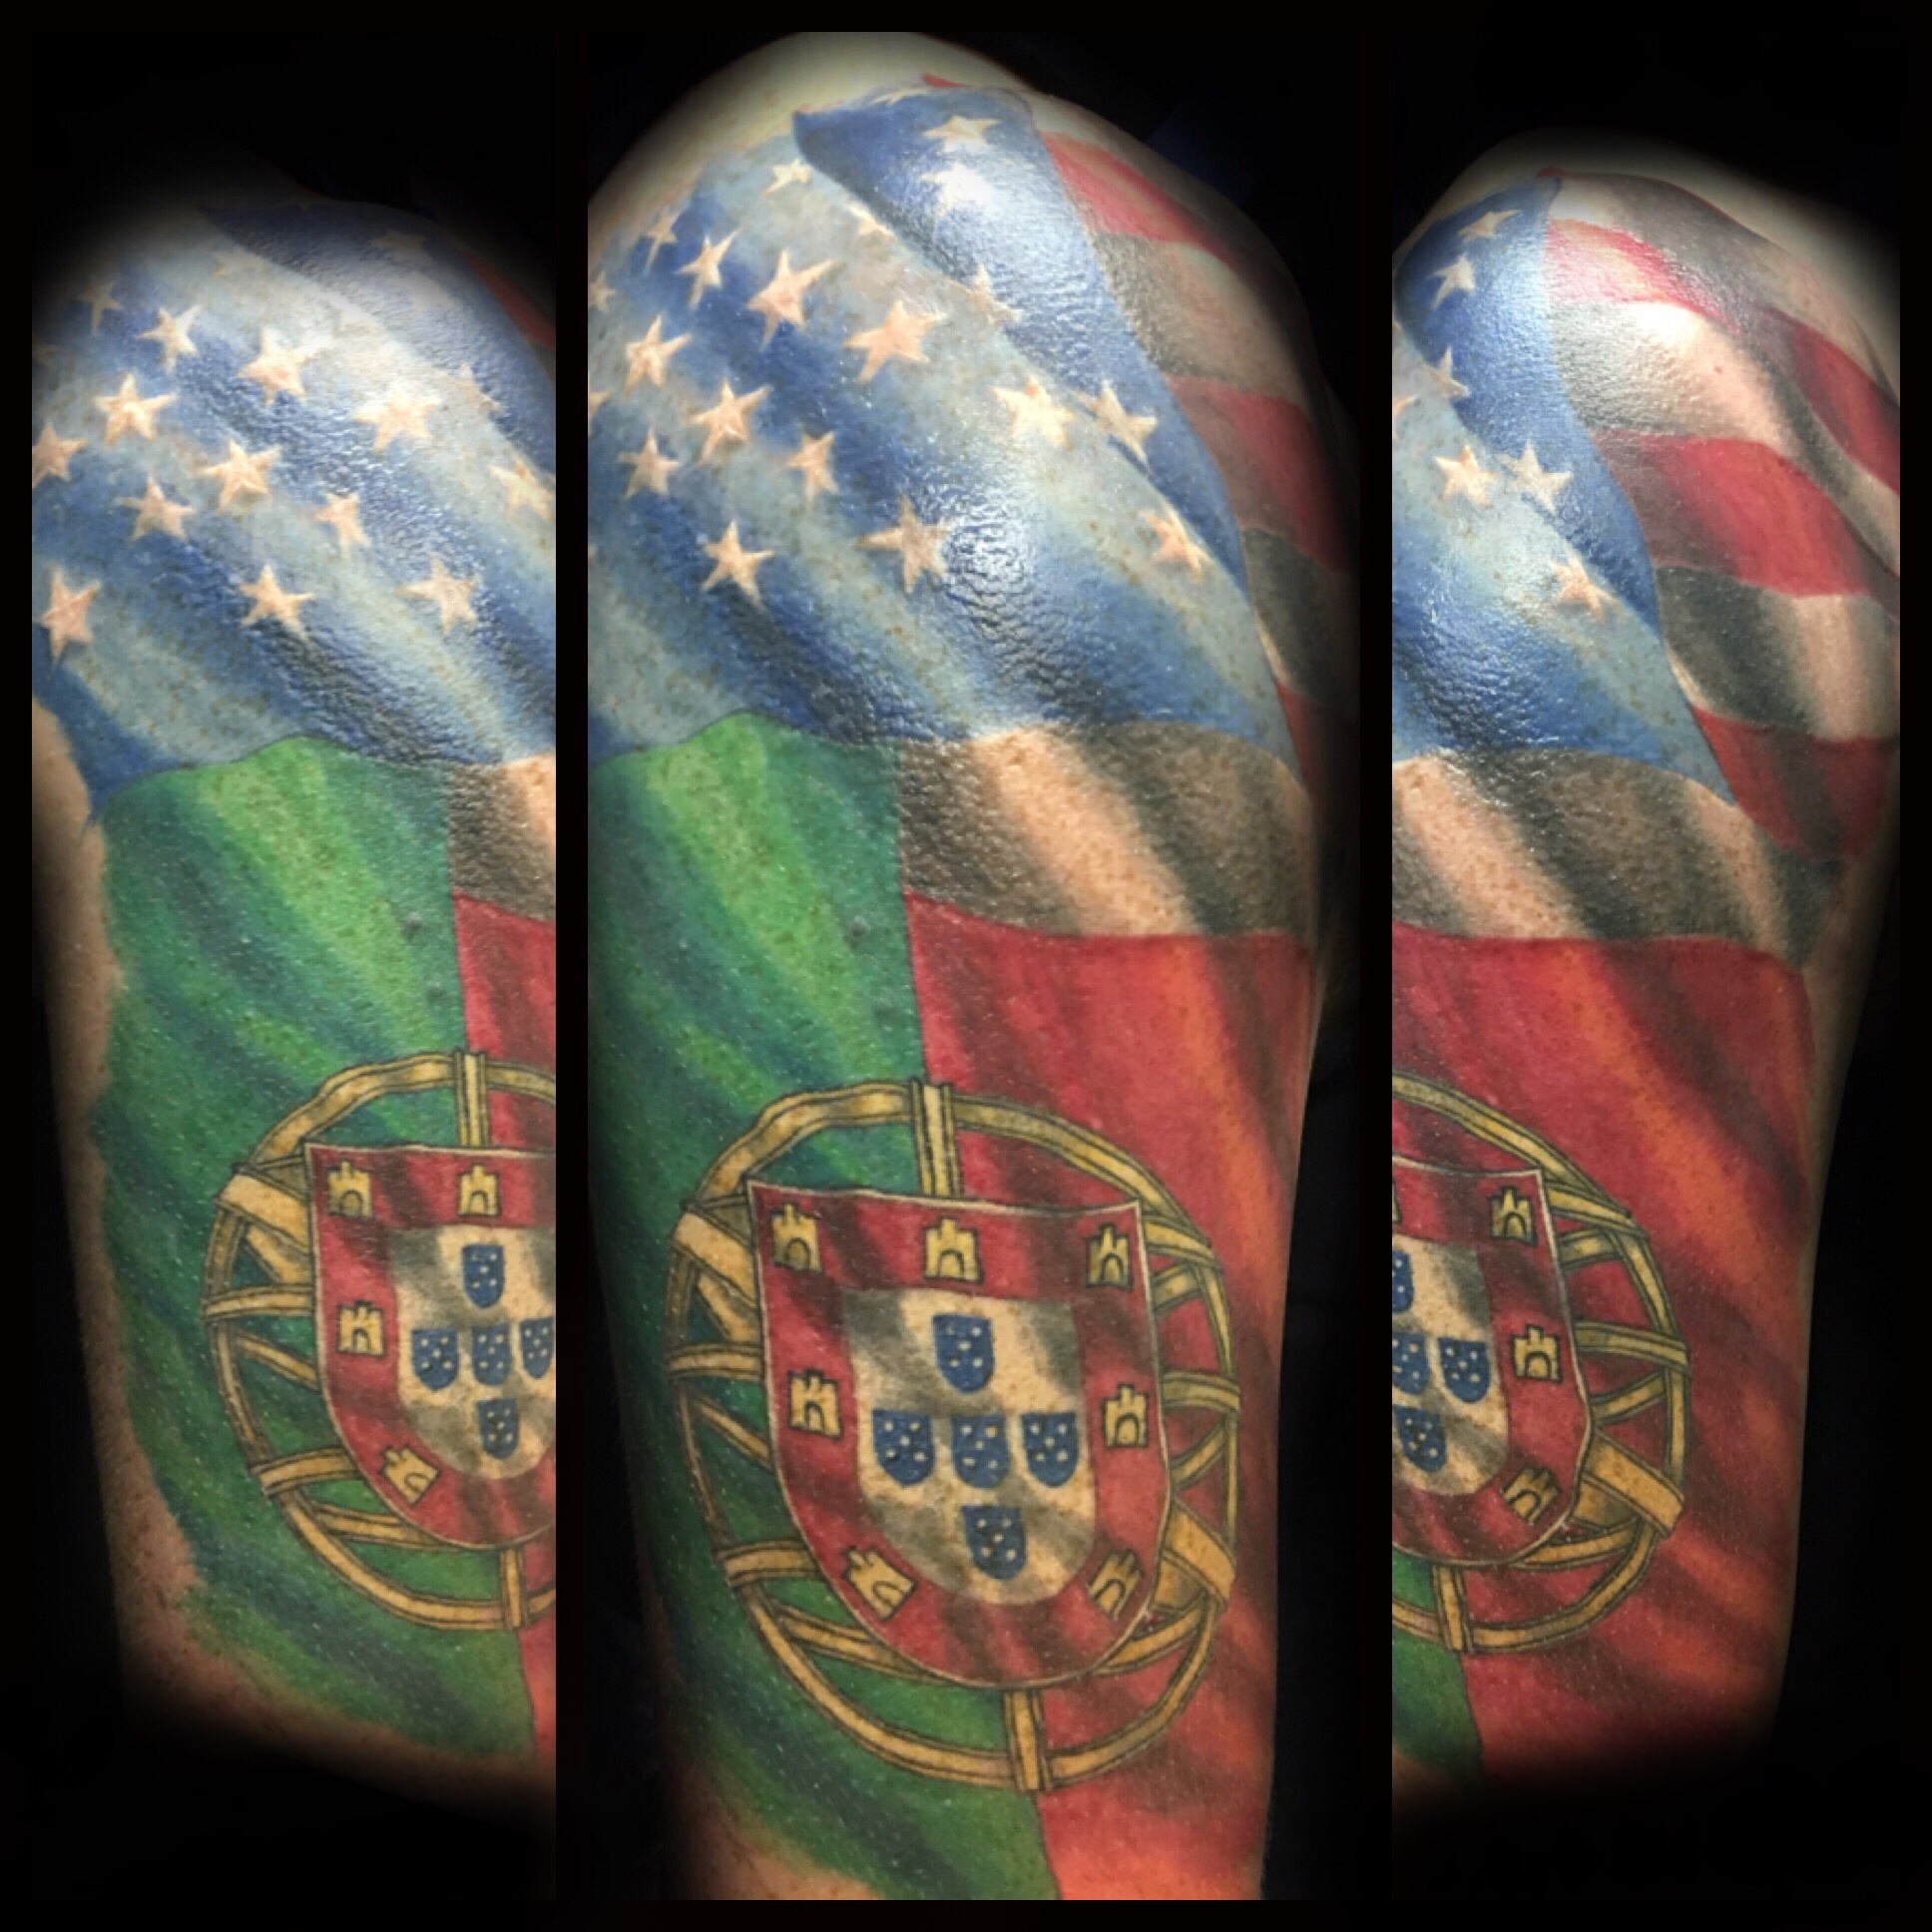 tattoo, tattoo shop, american flag